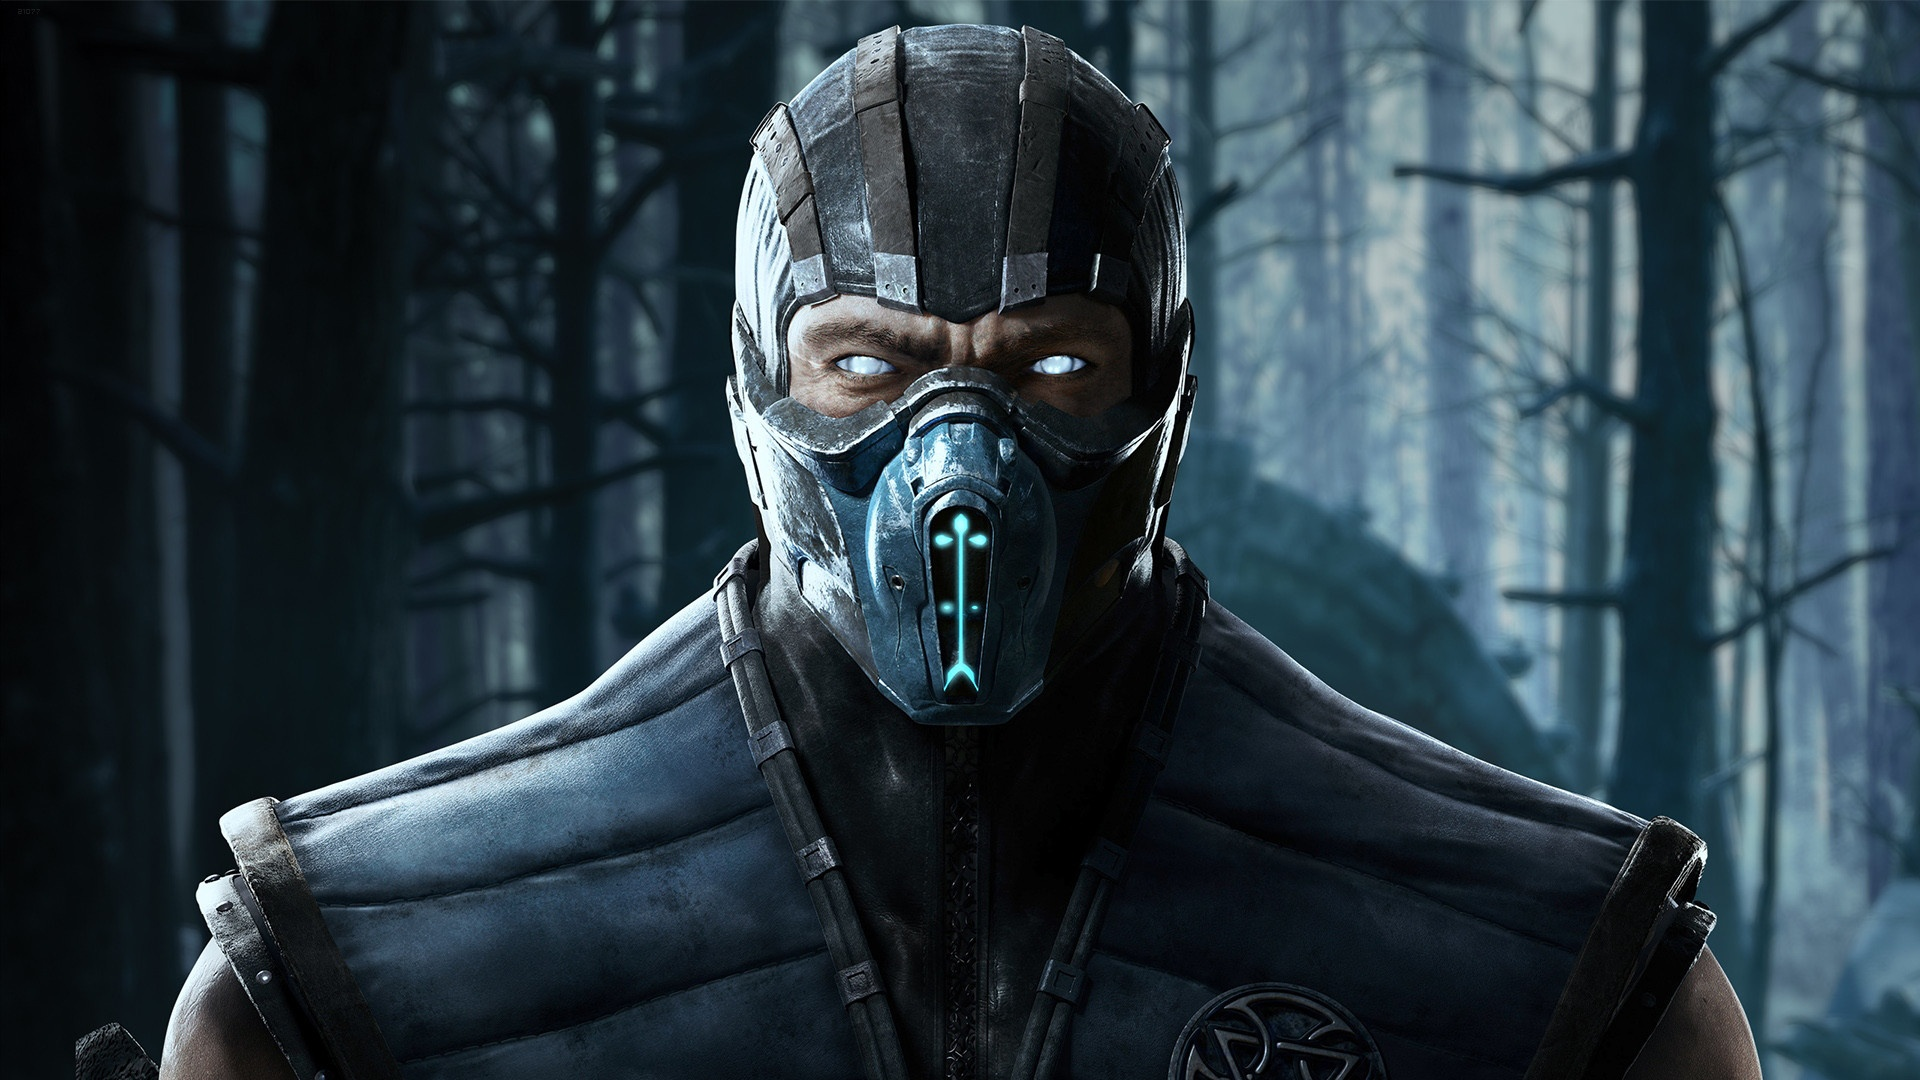 Sub-Zero Mortal Kombat X Wallpapers - 1920x1080 - 513180